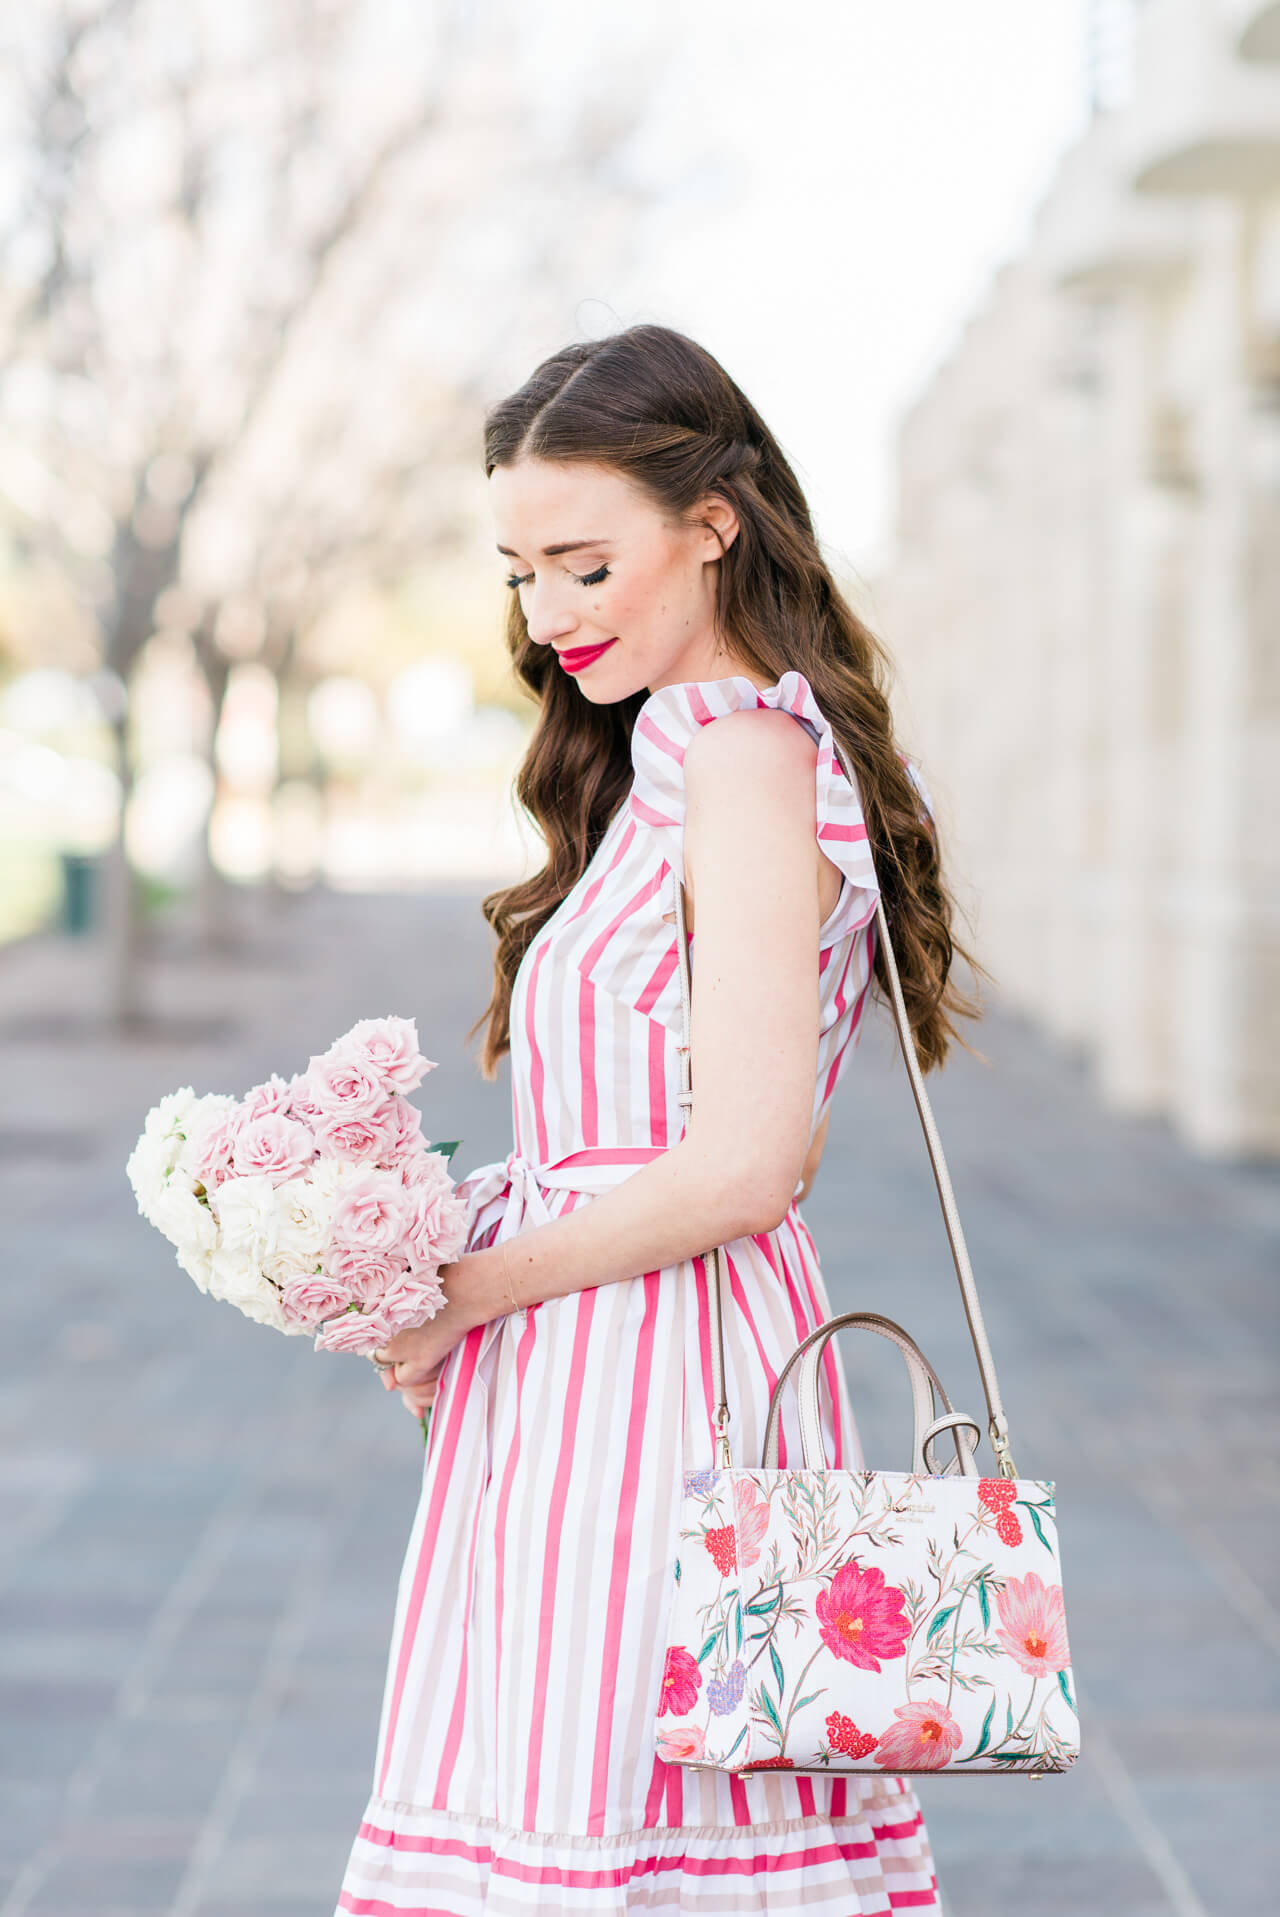 pairing stripes with florals for spring - M Loves M @marmar